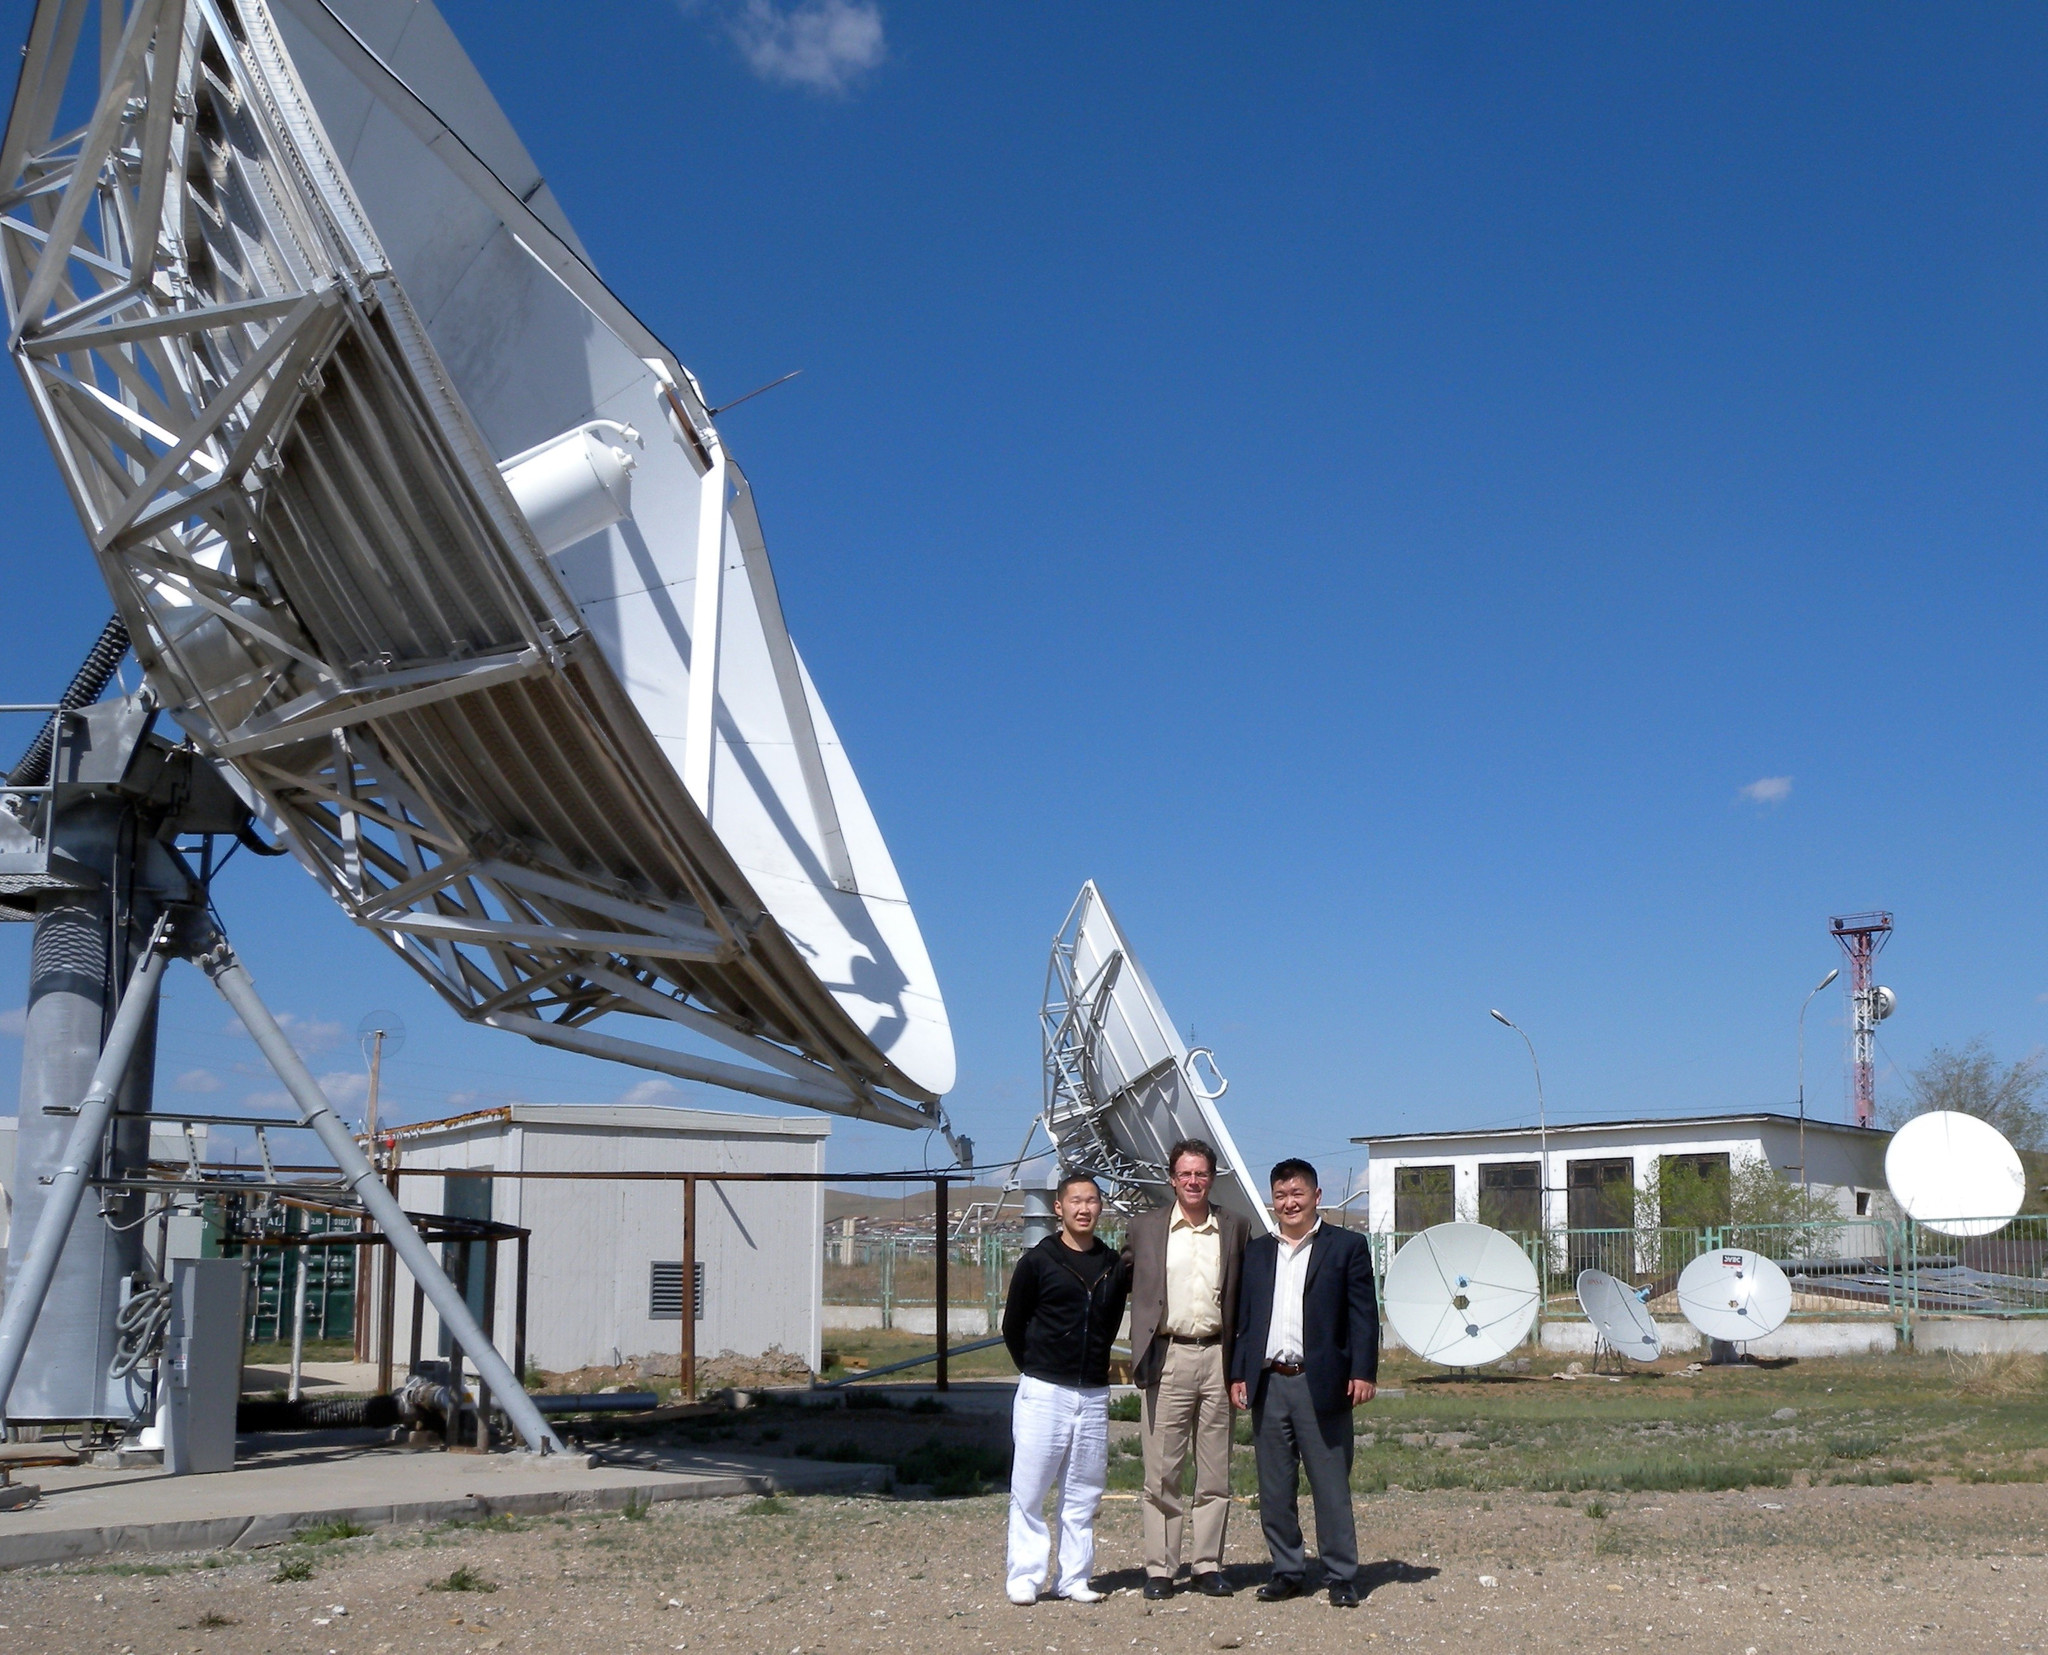 Scott Zimmer (center) visiting a cable/satellite company in Bator, Mongolia, in the early 2000s as head of EchoStar International Corp.